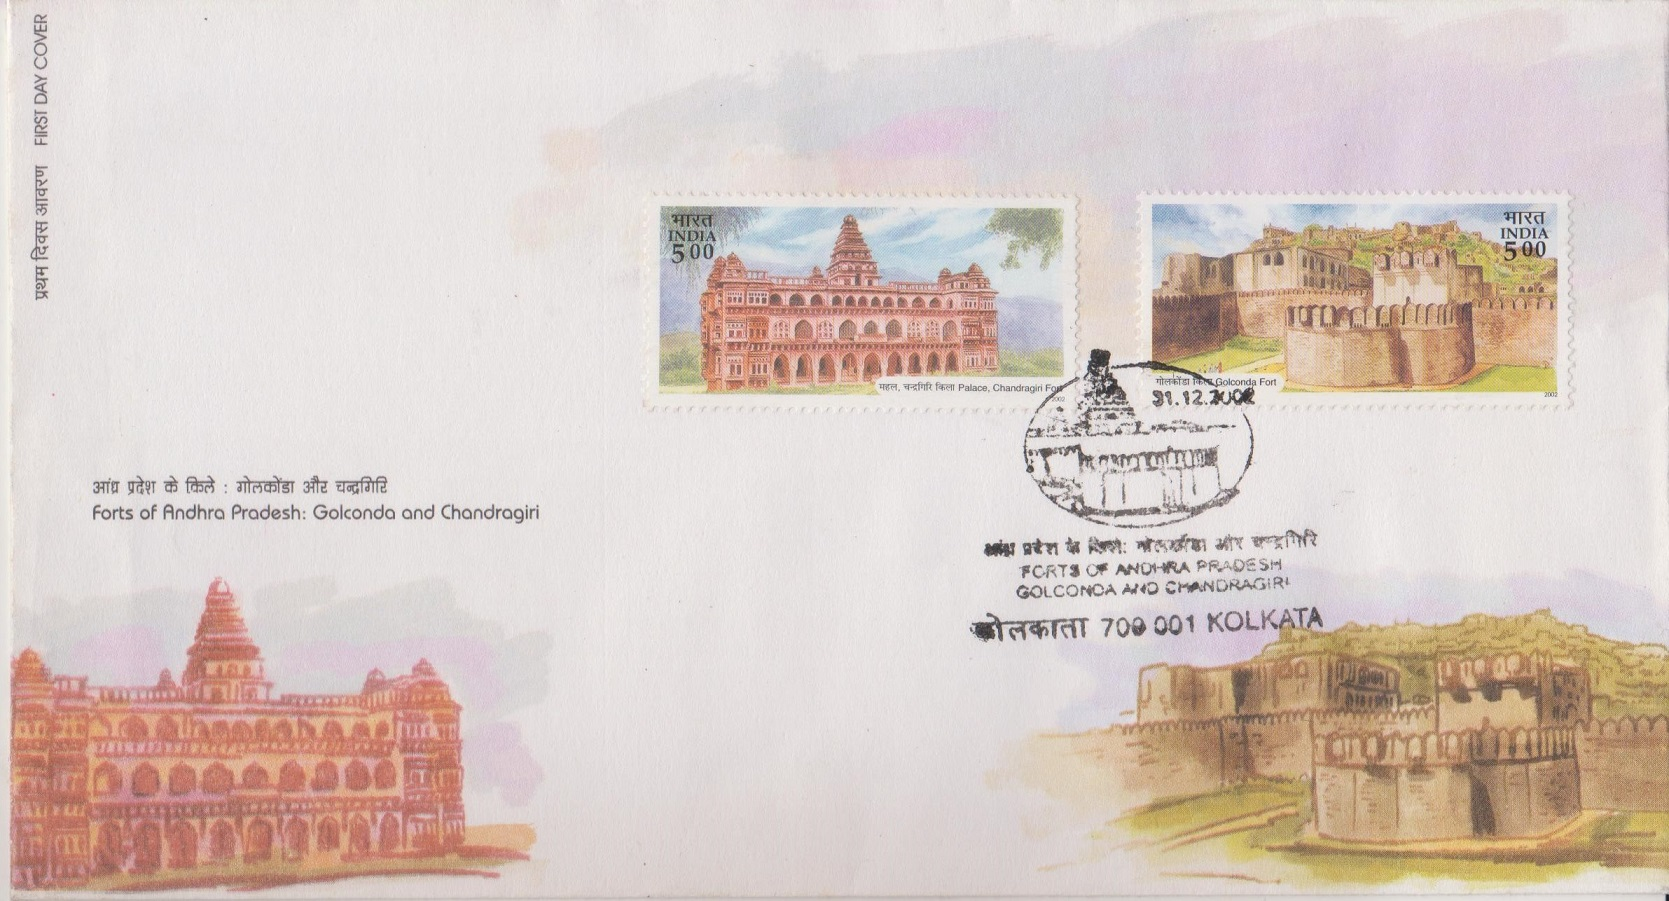 Golla konda Fort and Chandragiri Fort